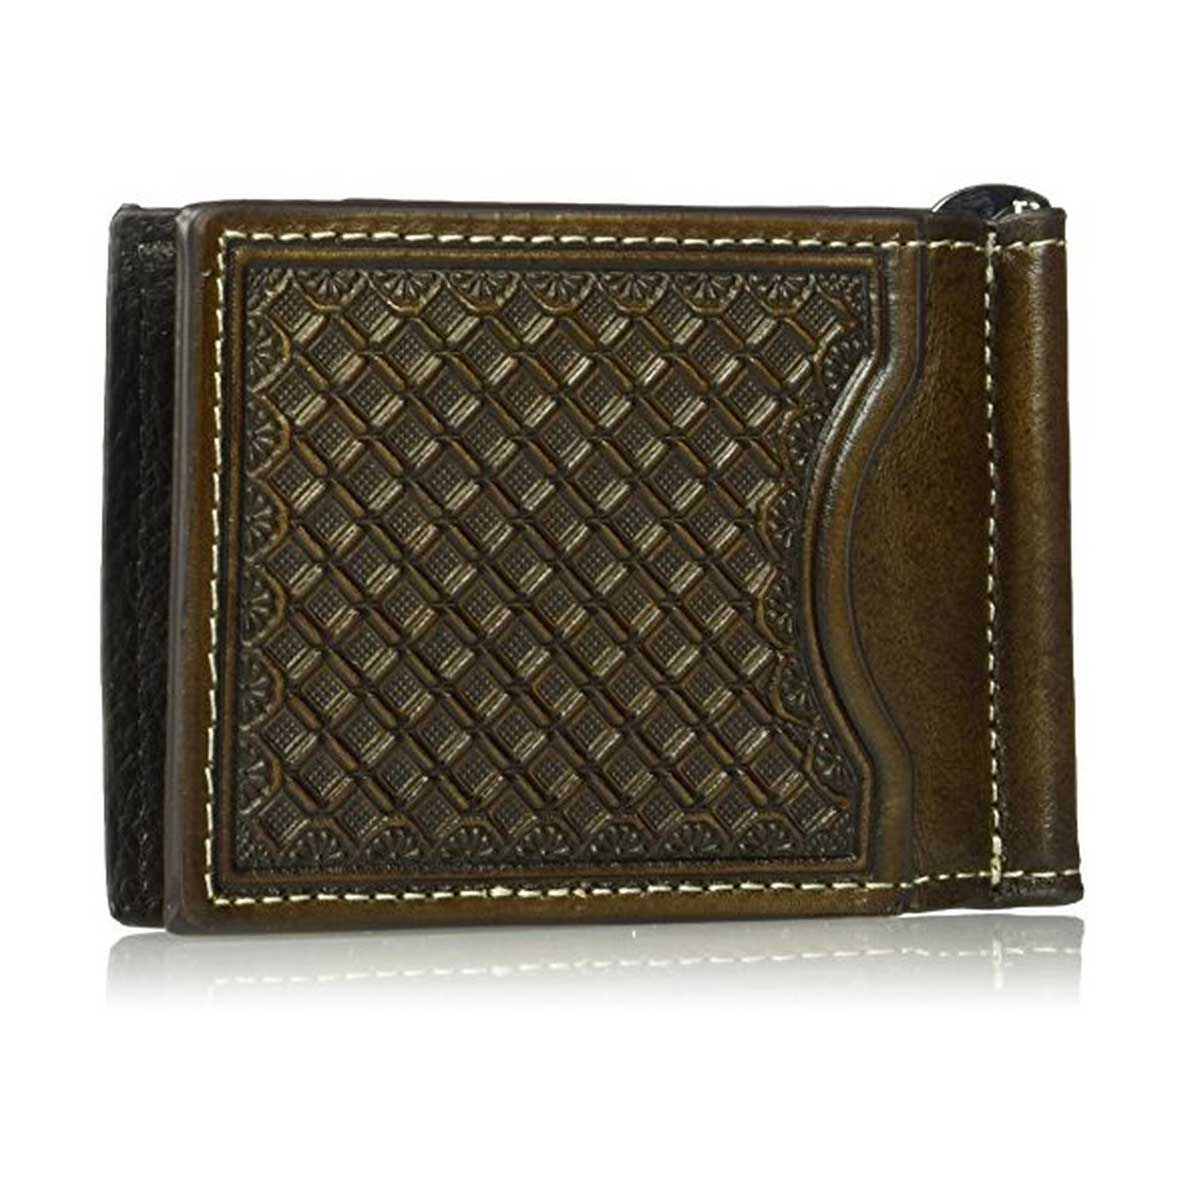 M & F Western Embossed Bifold Wallet with Money Clip